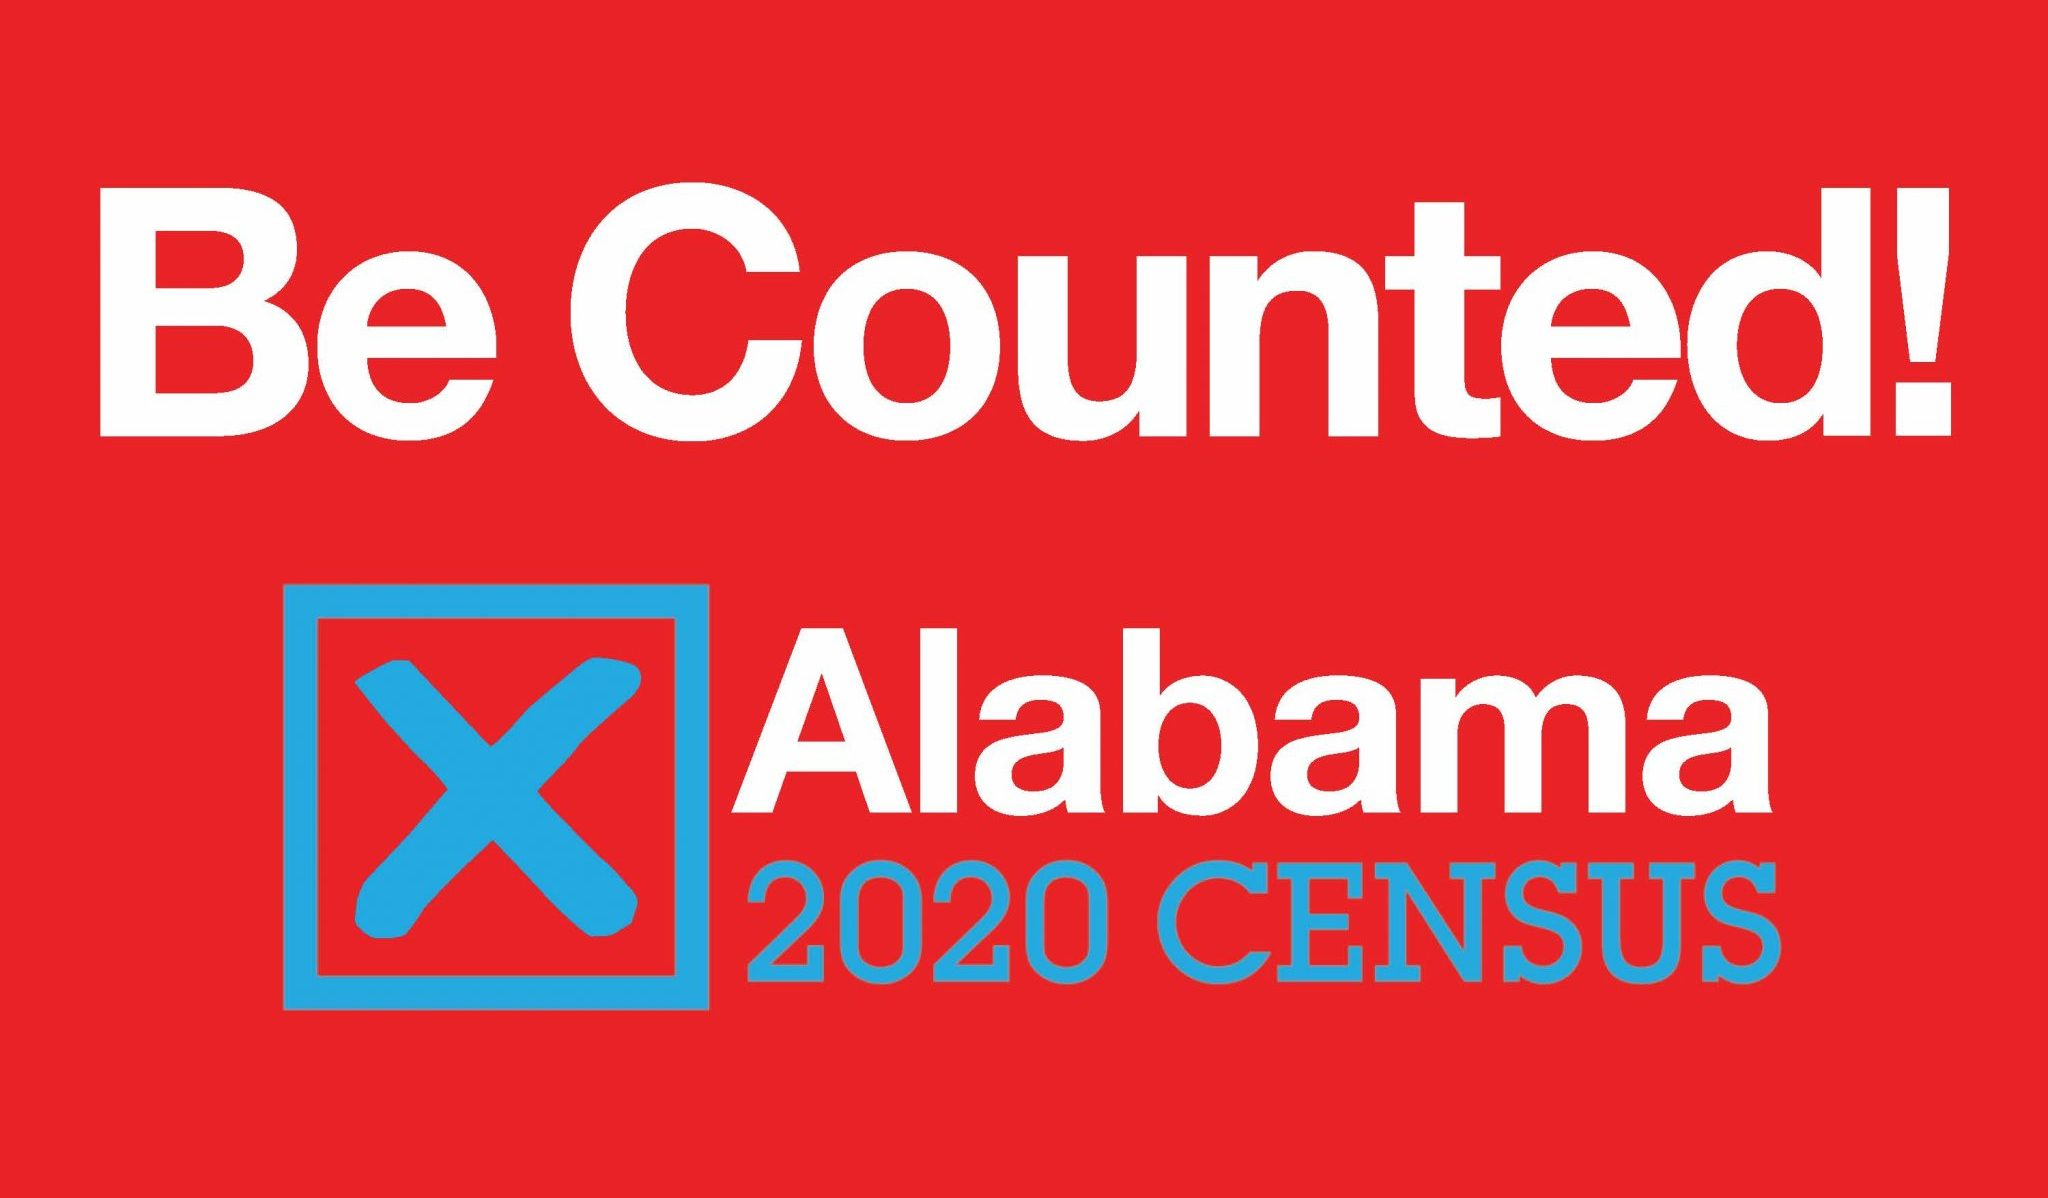 Be Counted! Alabama 2020 Census